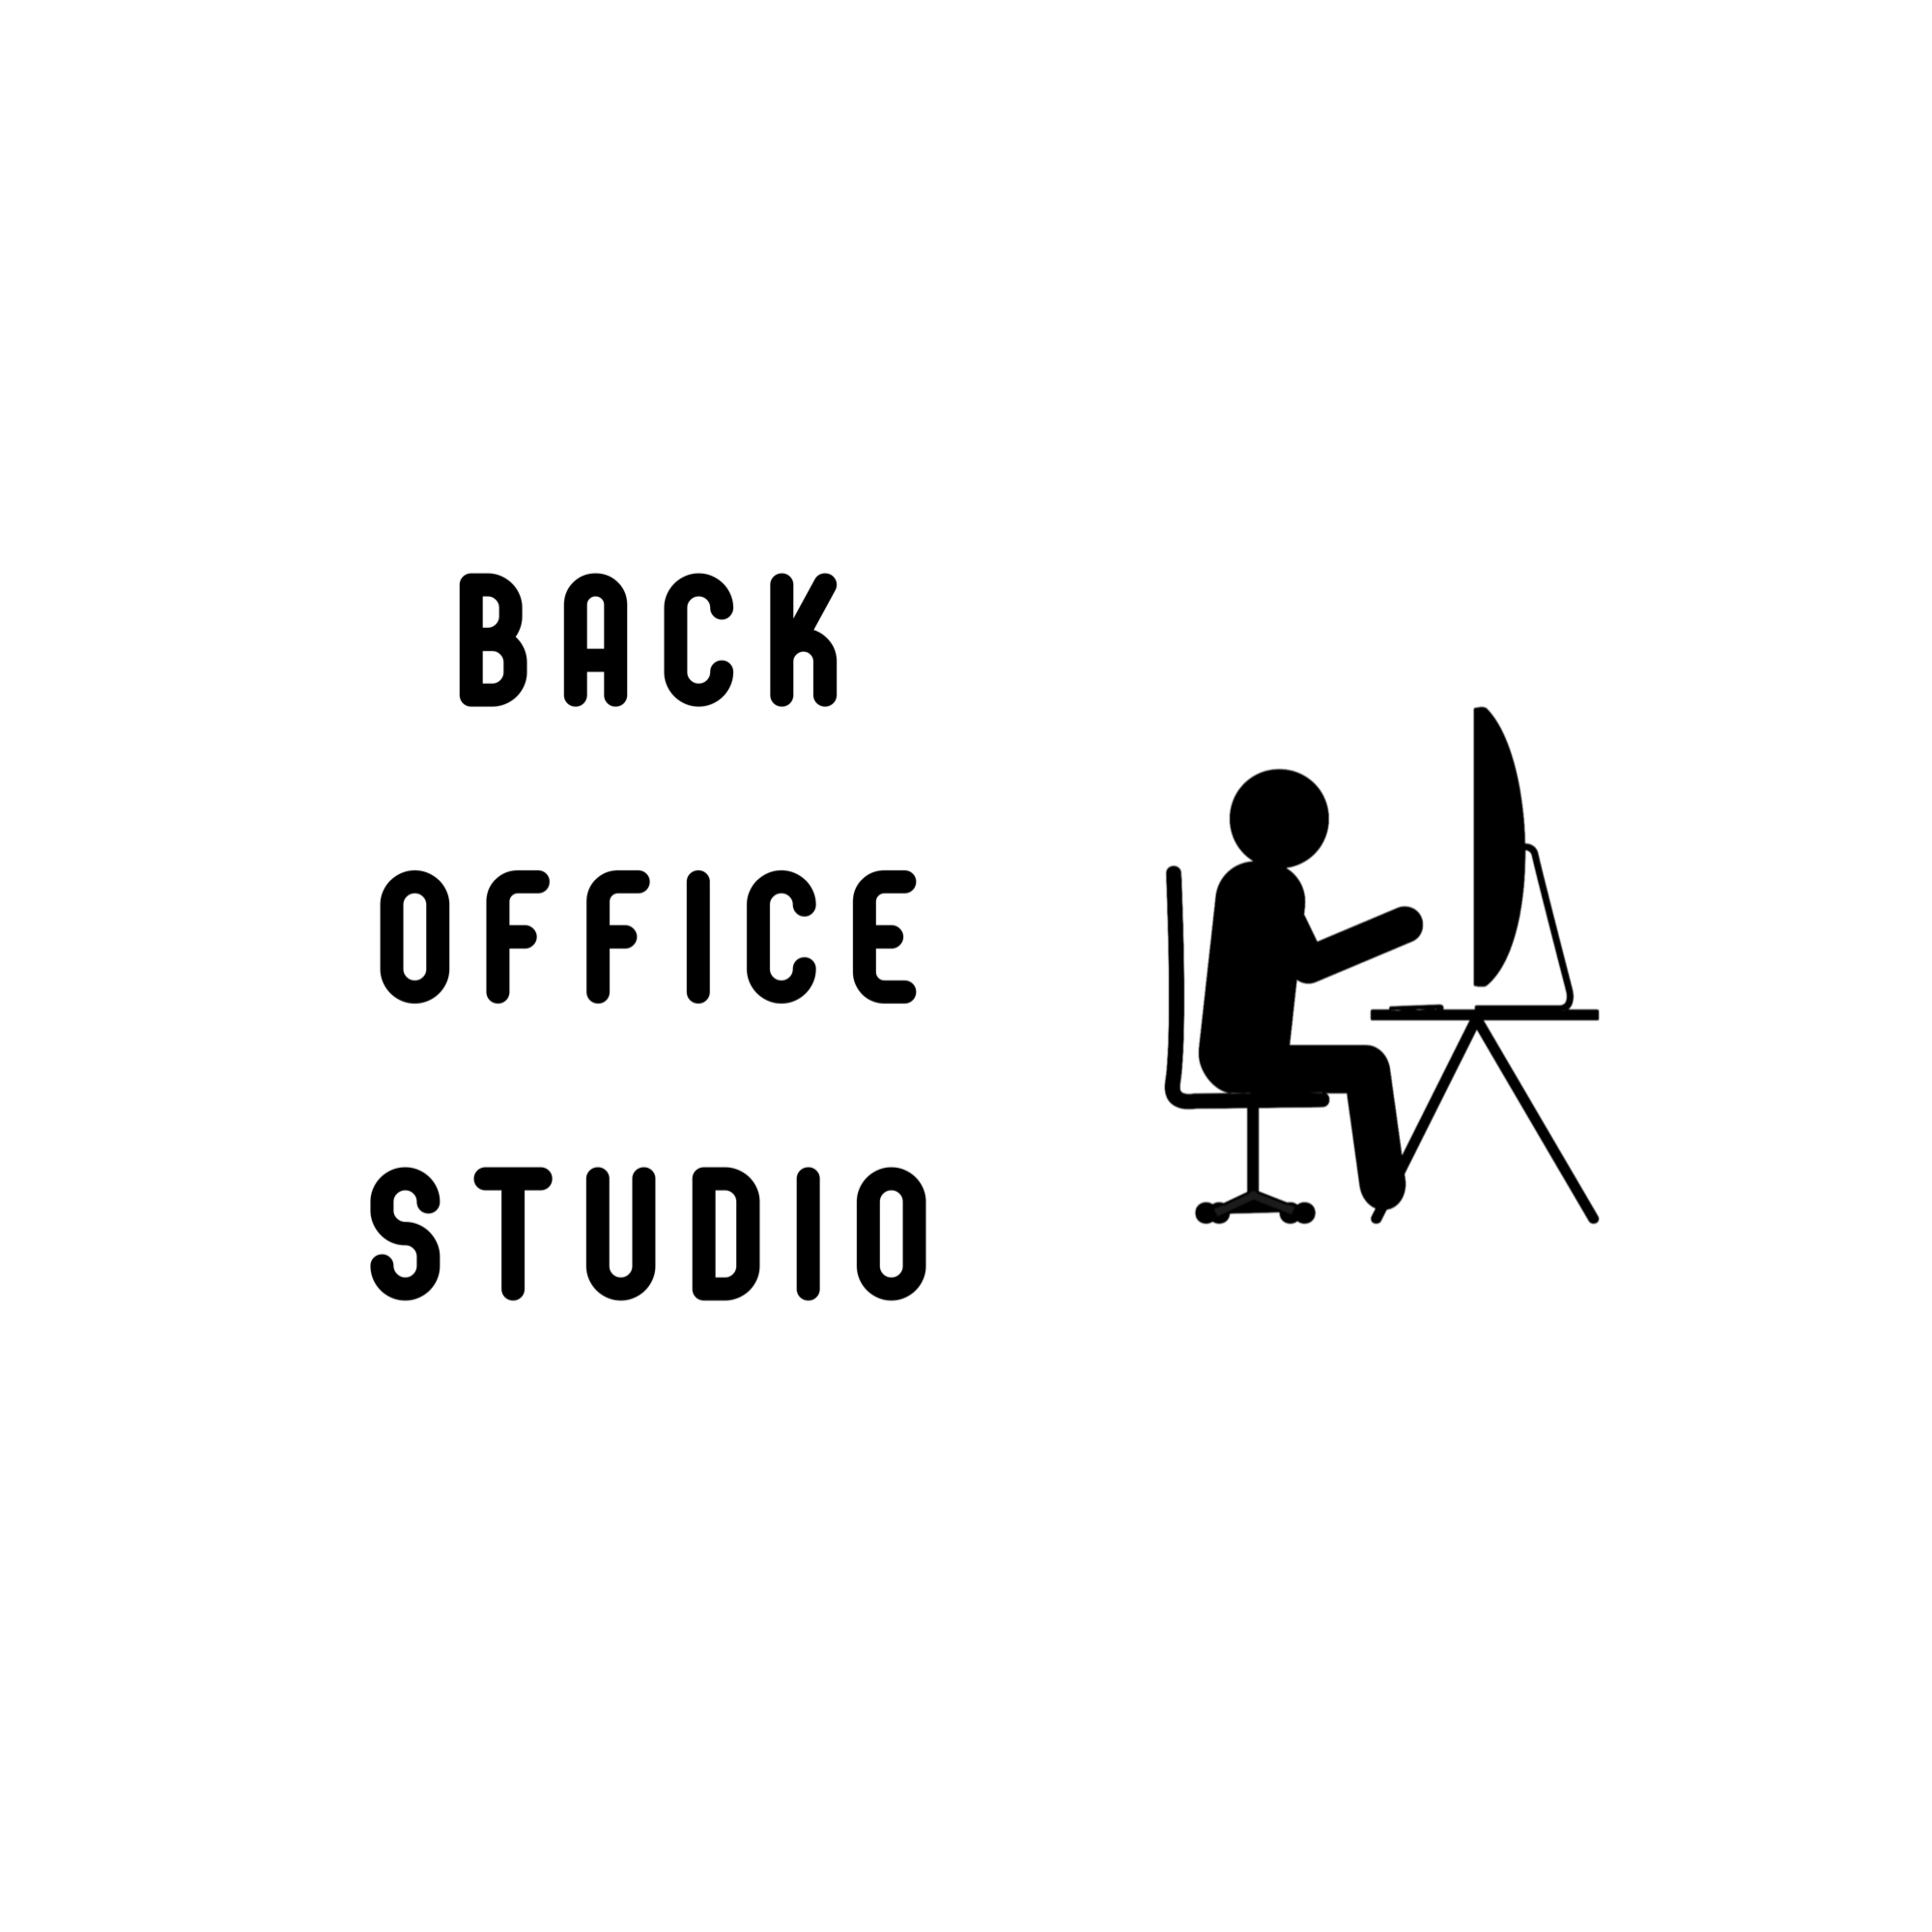 Back Office Studio